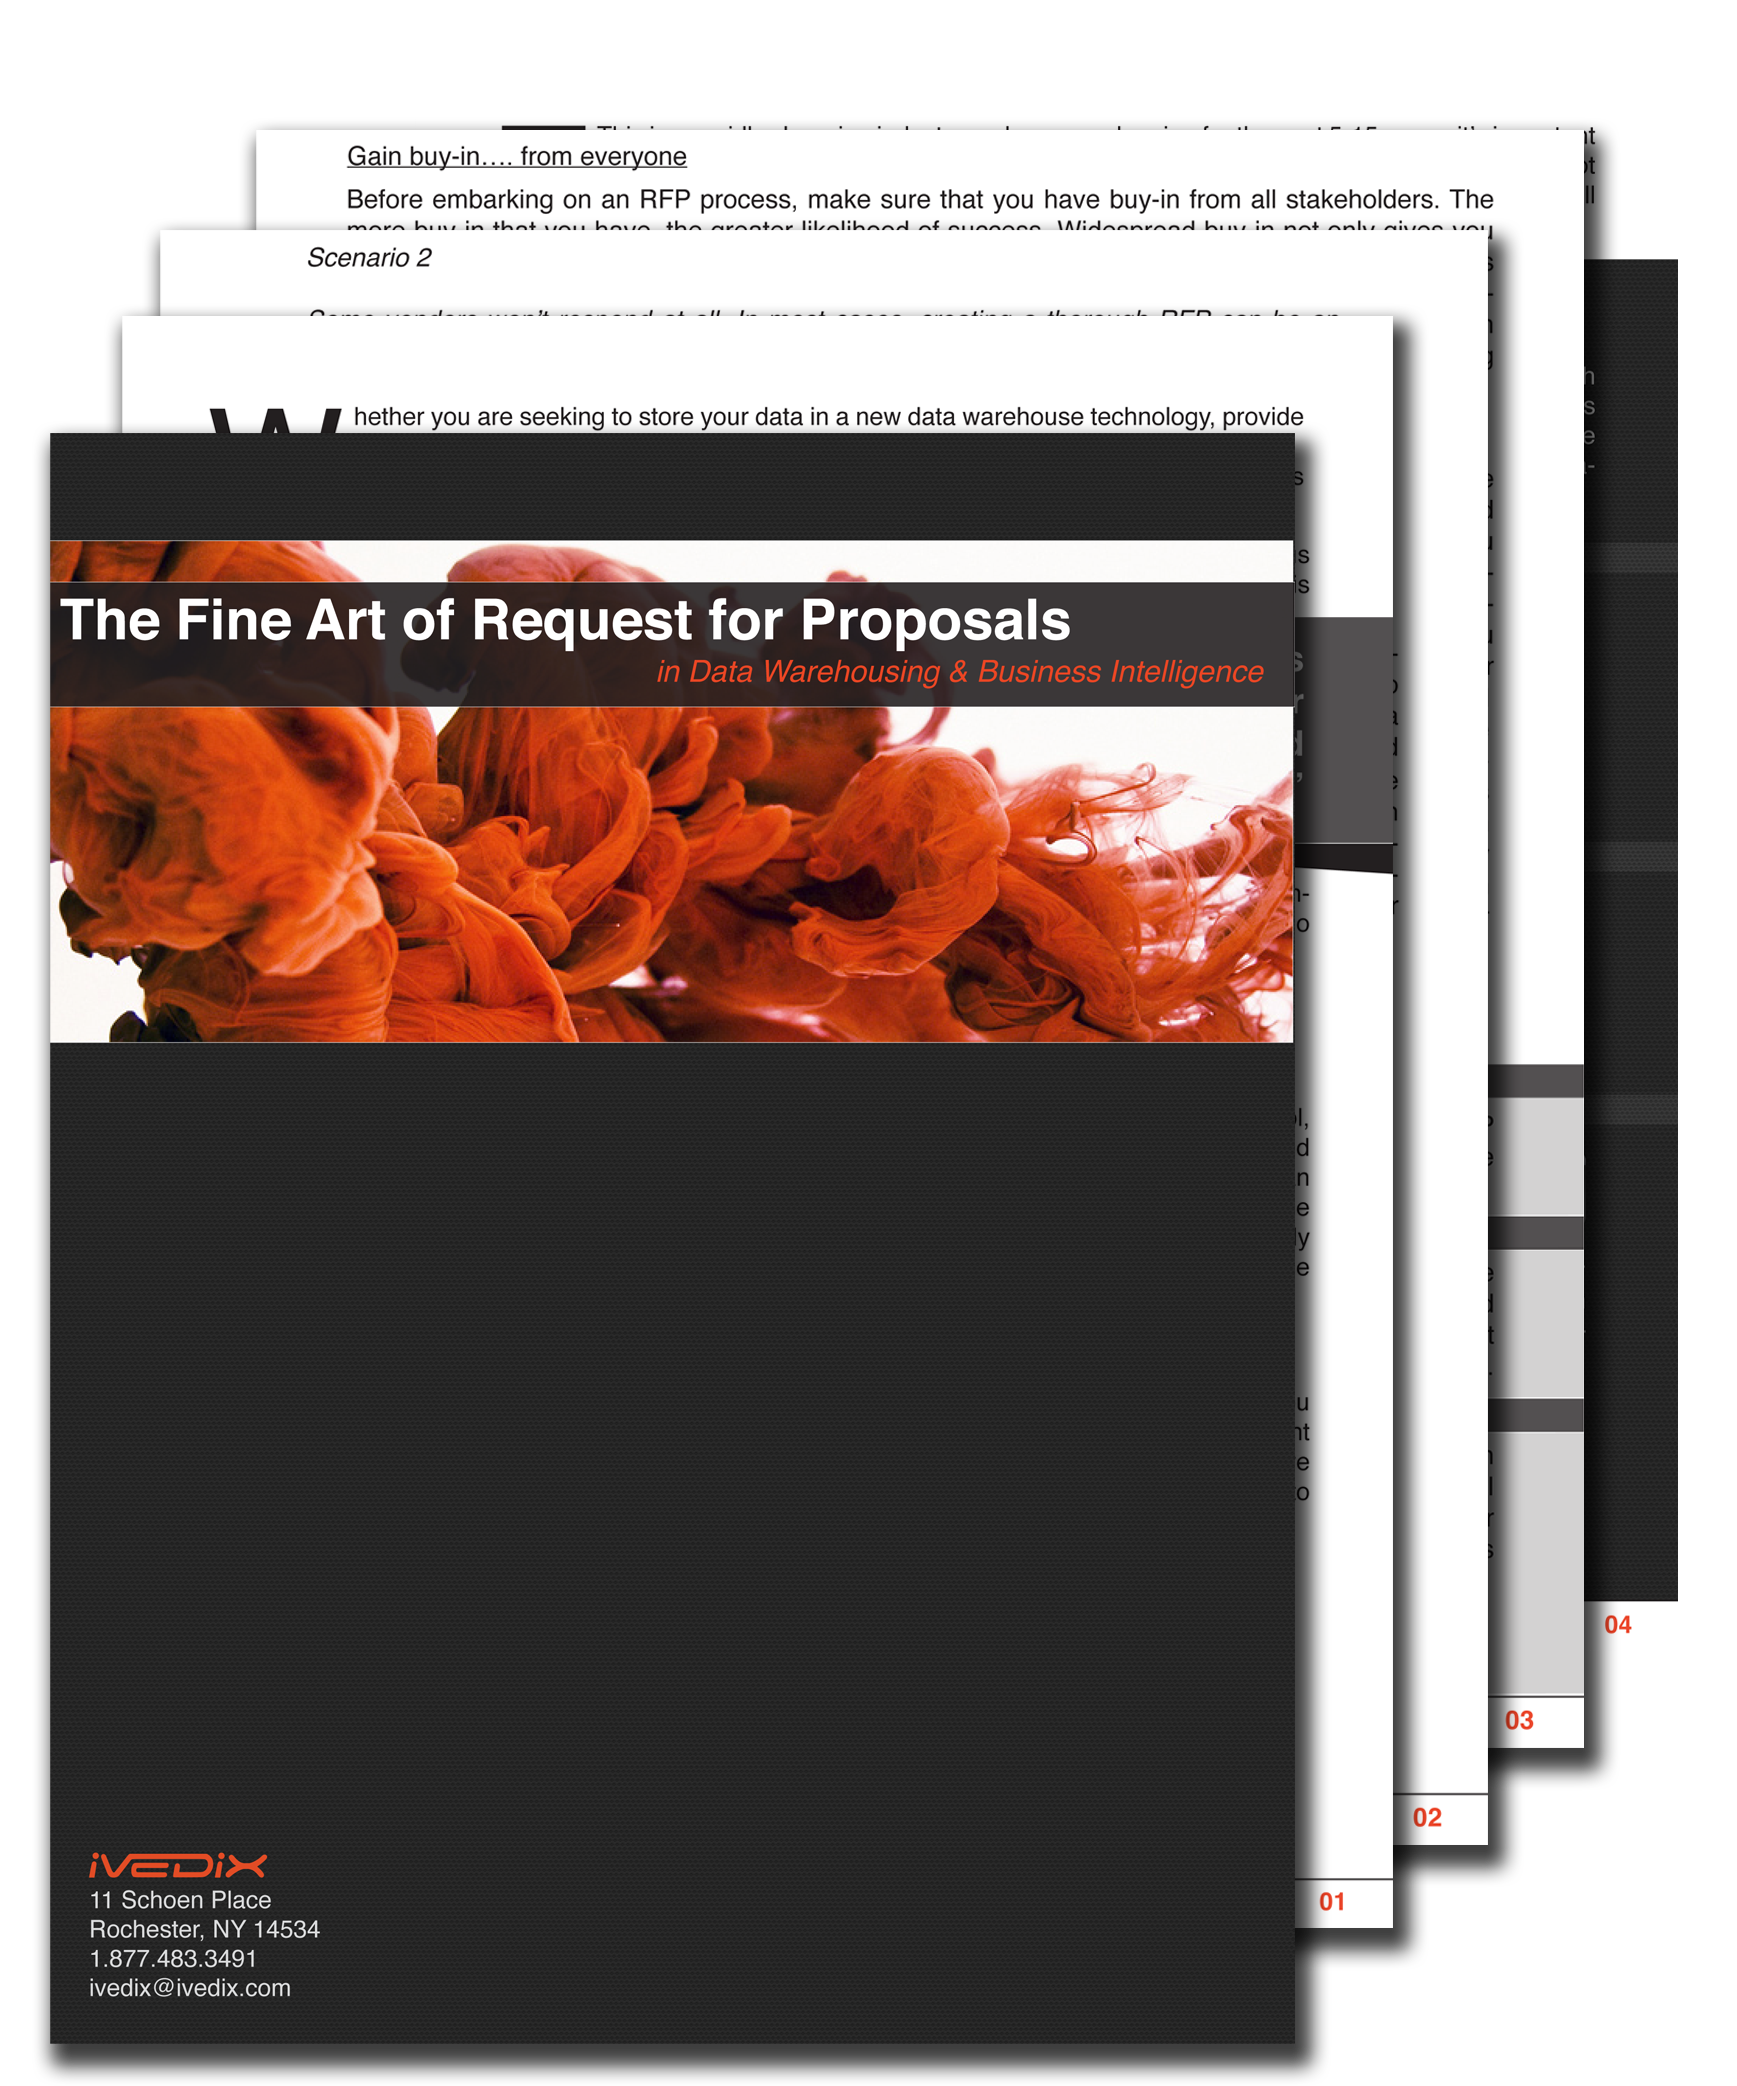 the fine art of rfps in data warehousing and business intelligence whitepaper